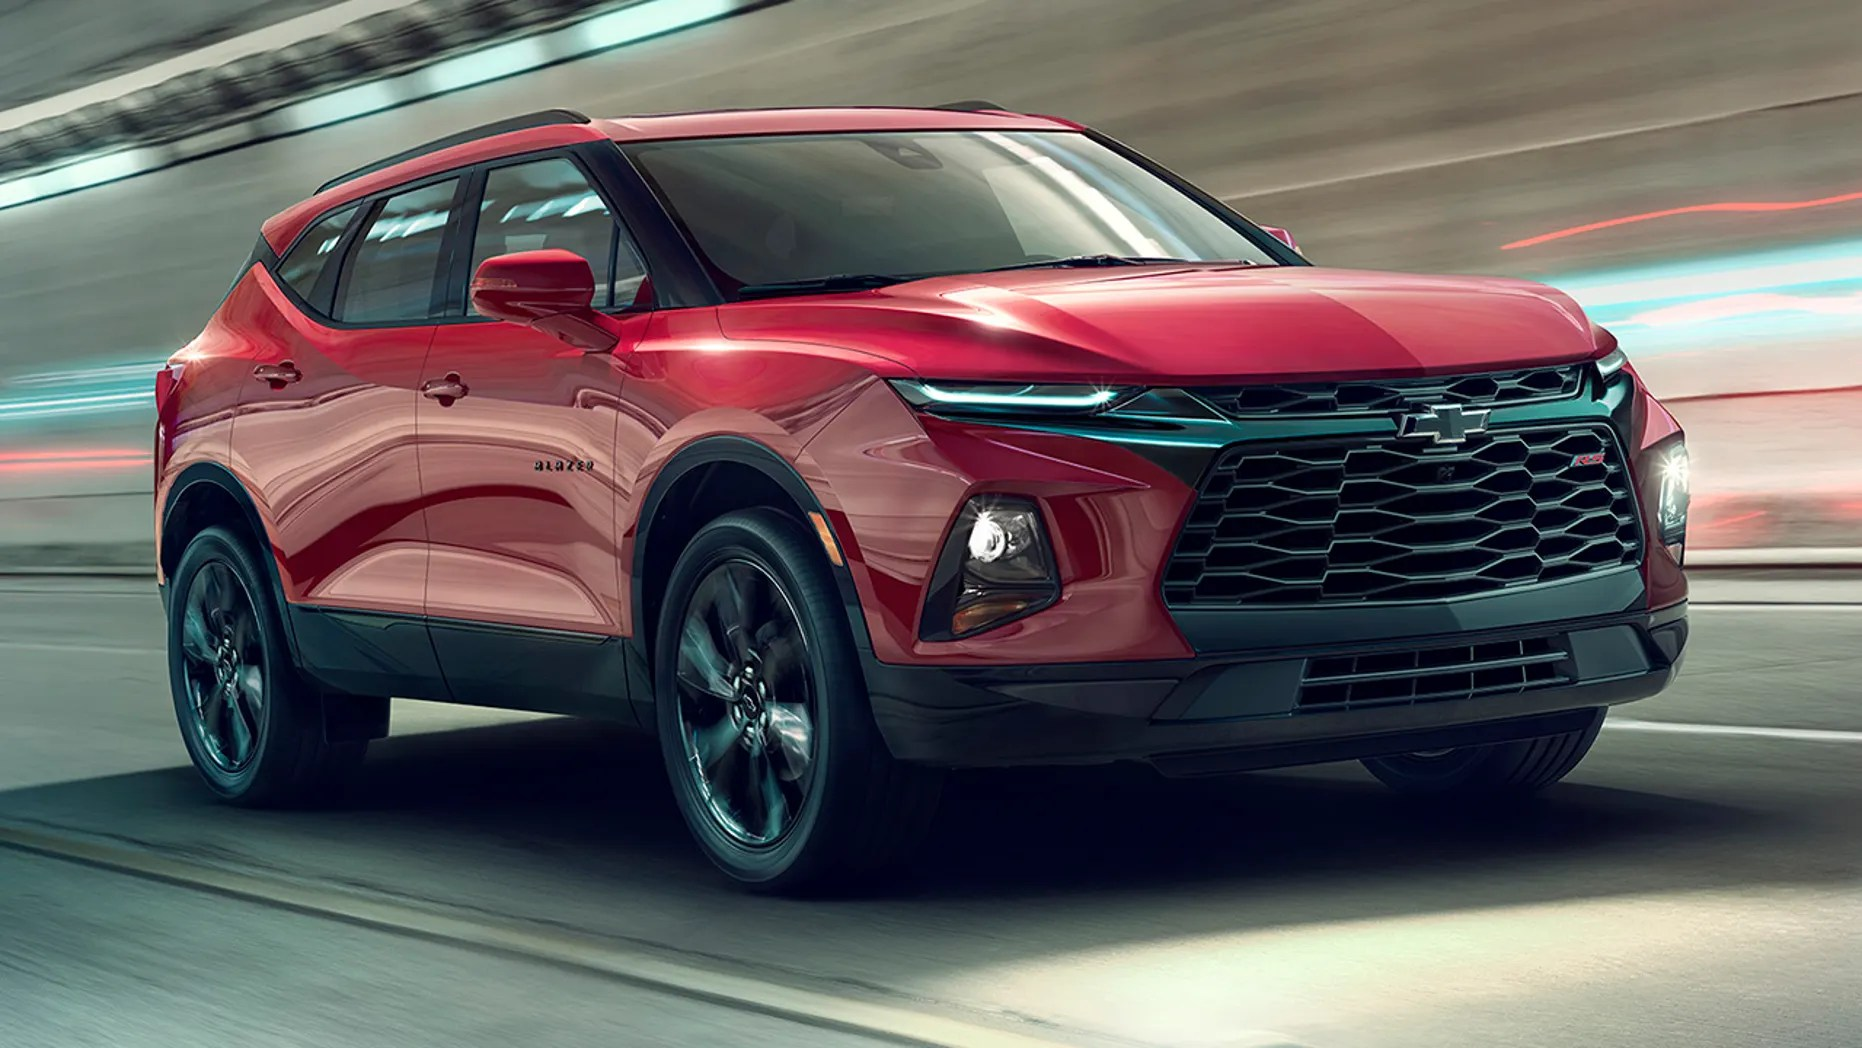 2019 chevrolet blazer rs an attention grabbing midsize suv offering style and versatility [ 1862 x 1048 Pixel ]